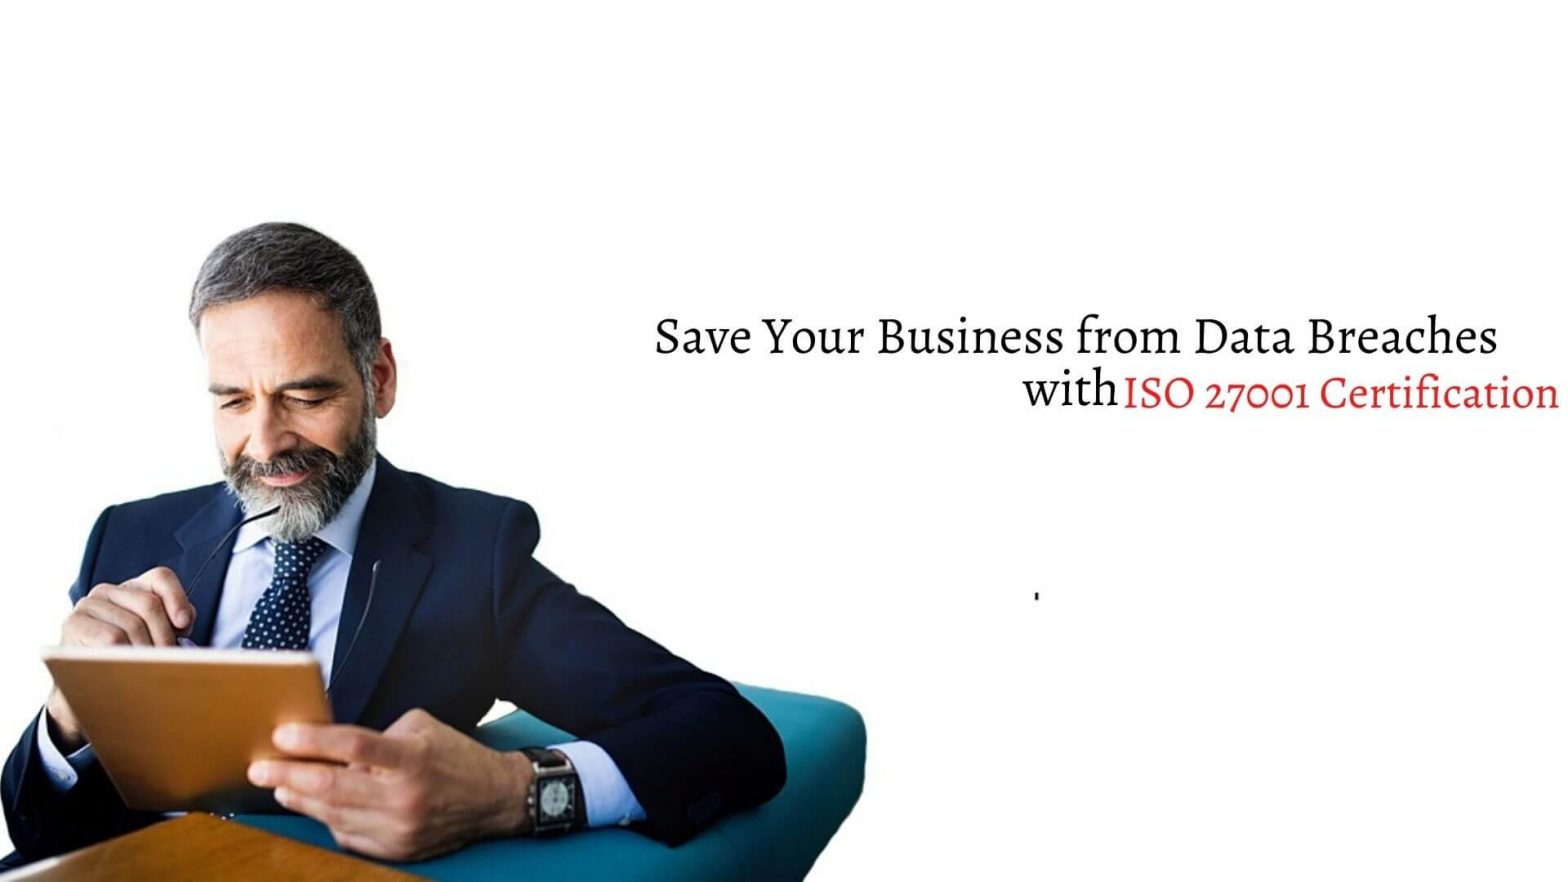 Save Your Business from Data Breaches with ISO 27001 Certification